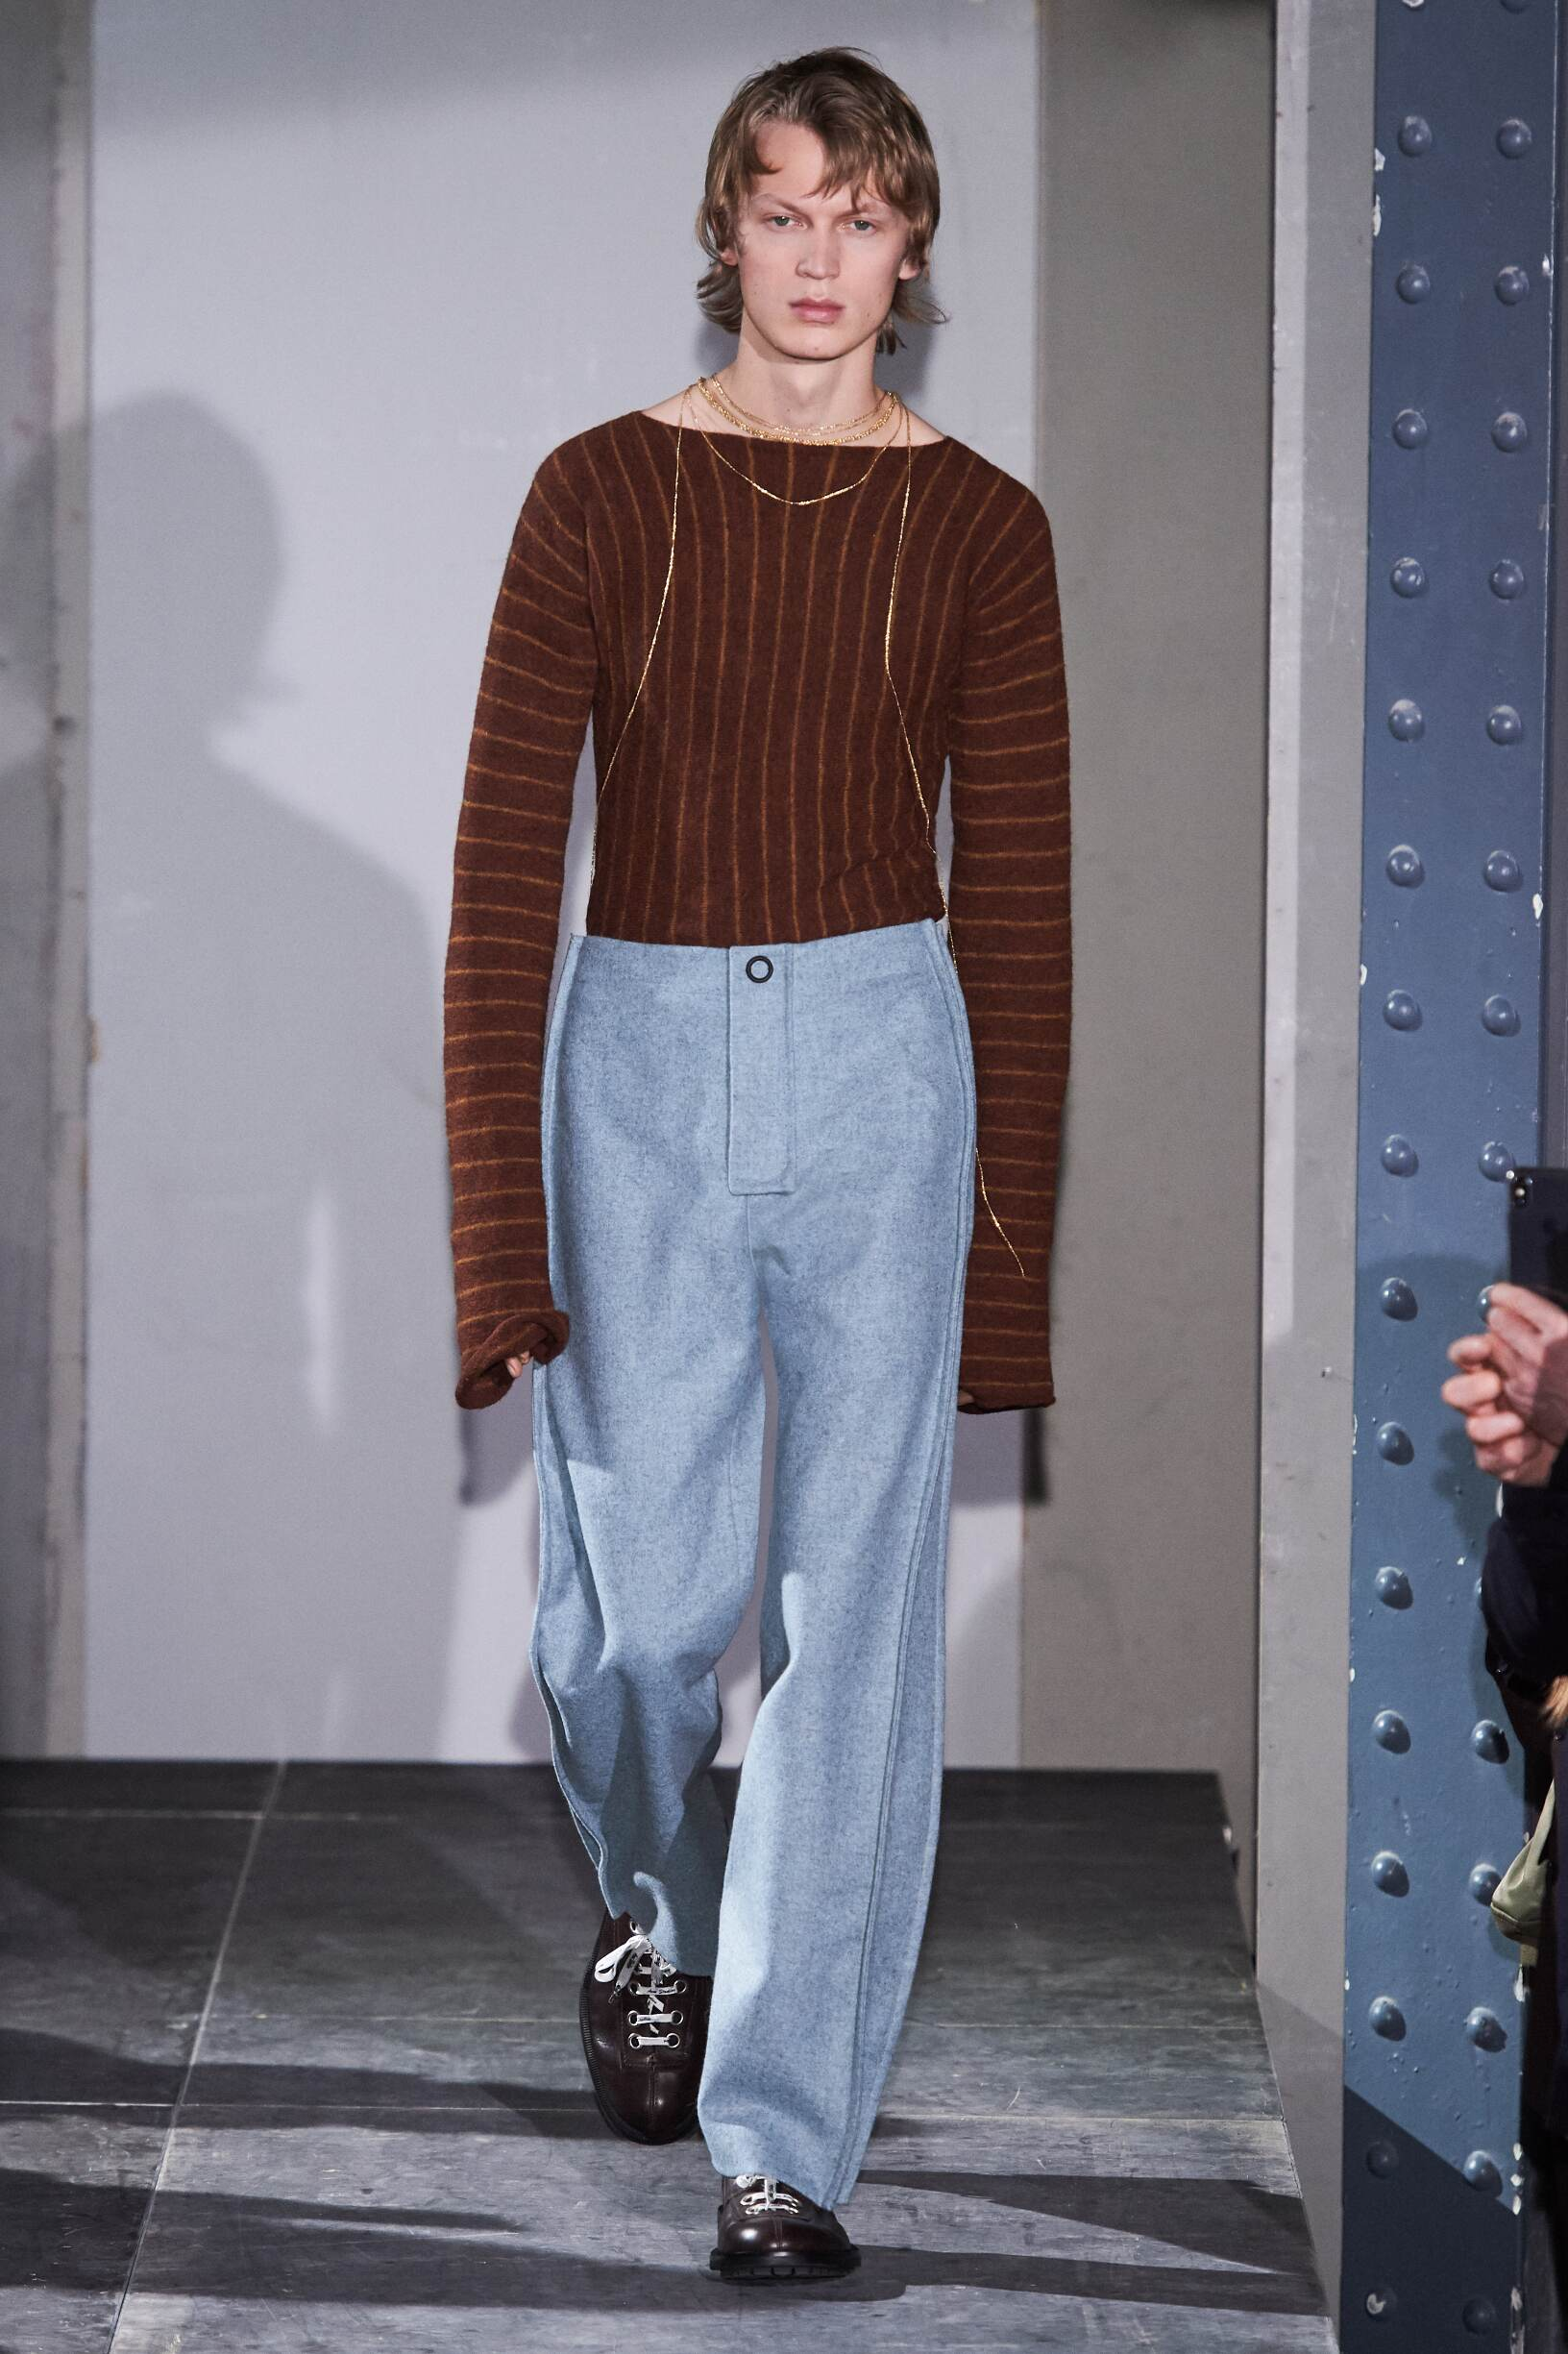 Man FW 2018-19 Fashion Show Acne Studios